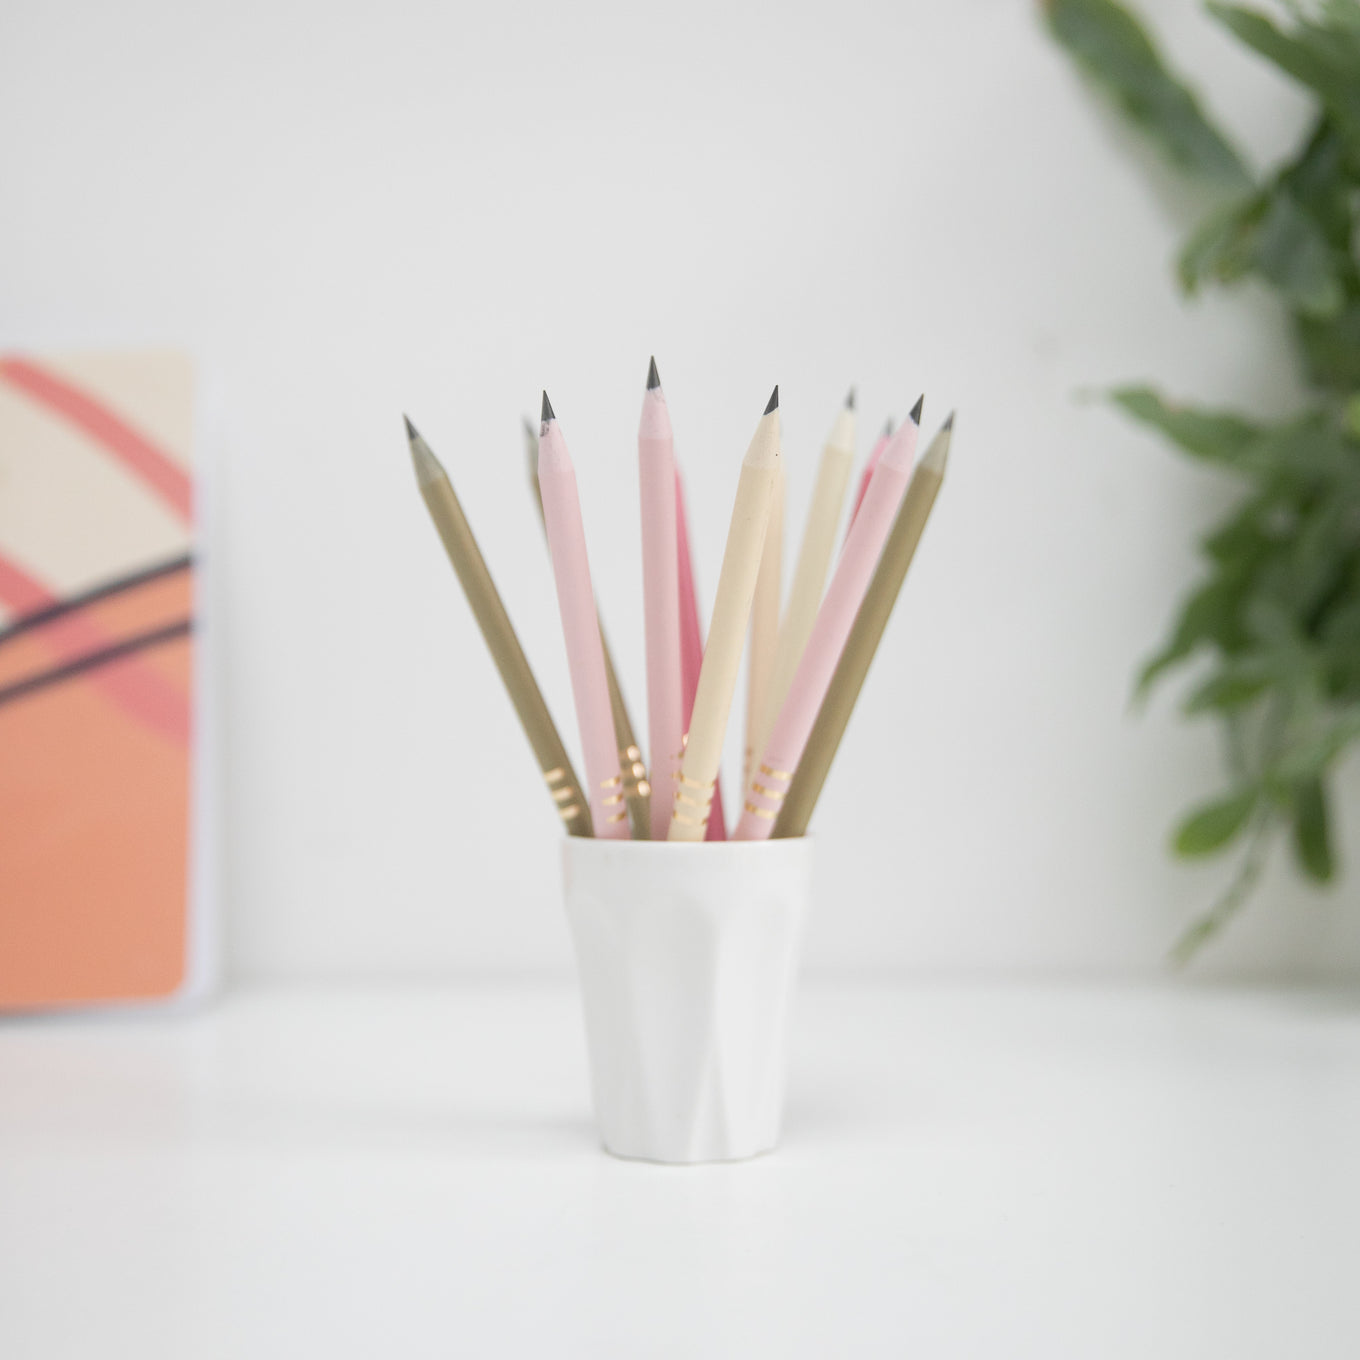 Gold Pencils | 3 Pack